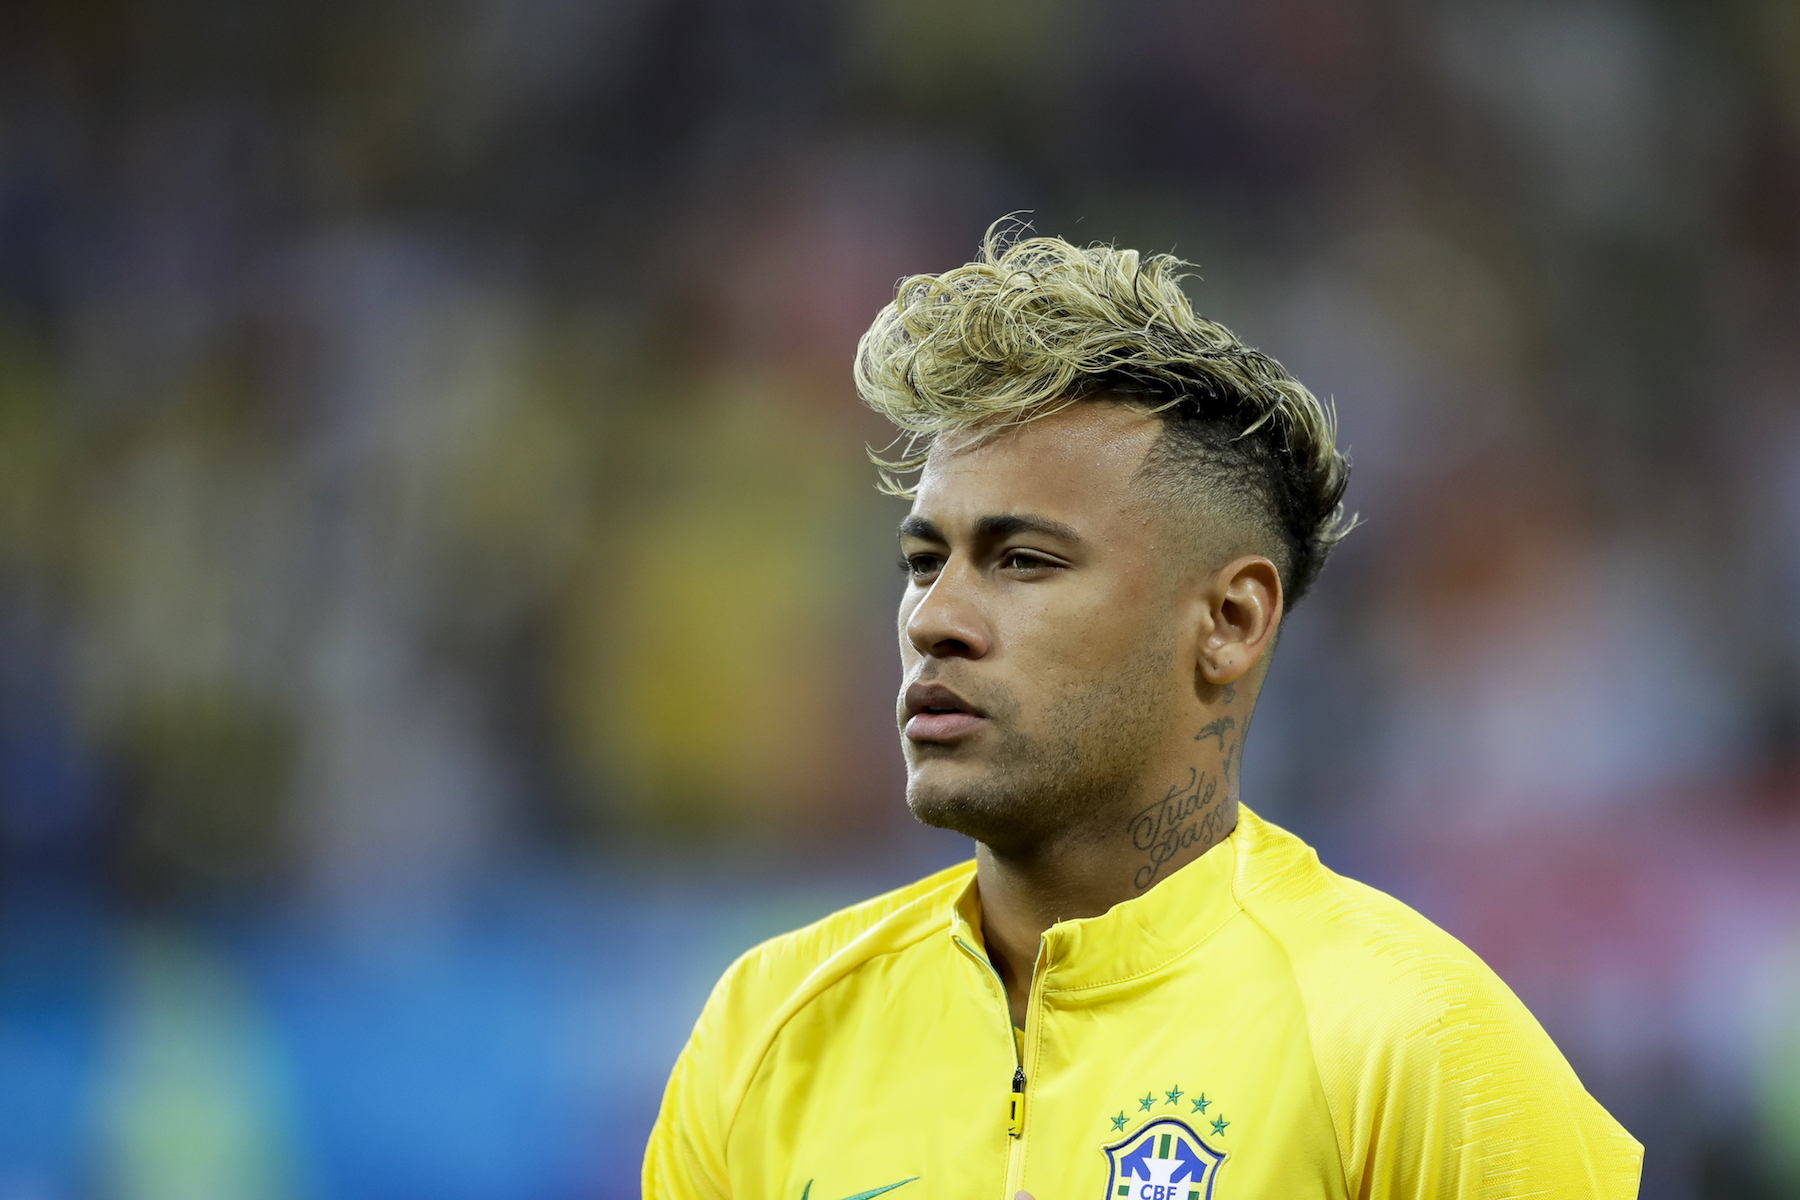 <div class='meta'><div class='origin-logo' data-origin='AP'></div><span class='caption-text' data-credit='AP Photo/Andre Penner'>Brazil's Neymar lines up prior to the group E match against Switzerland at the 2018 soccer World Cup in the Rostov Arena in Rostov-on-Don, Russia, Sunday, June 17, 2018.</span></div>